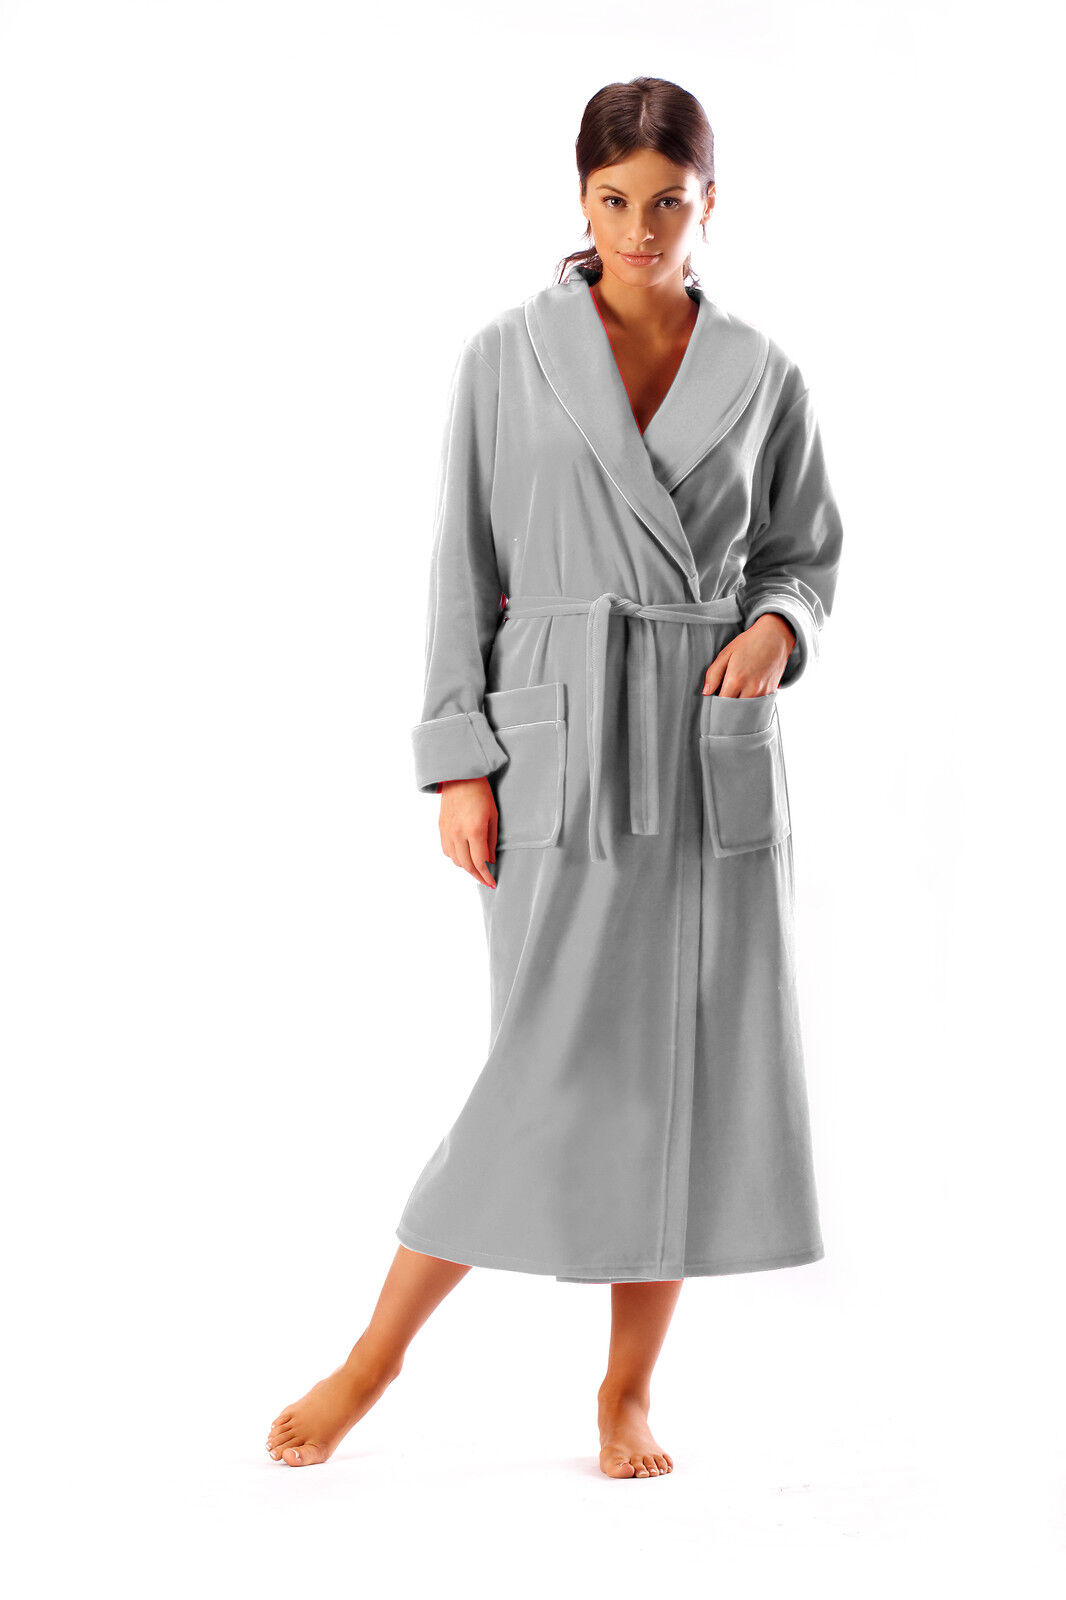 Cotton On Dressing Gown New Women Full Length Cotton Bathrobe Dressing Gown